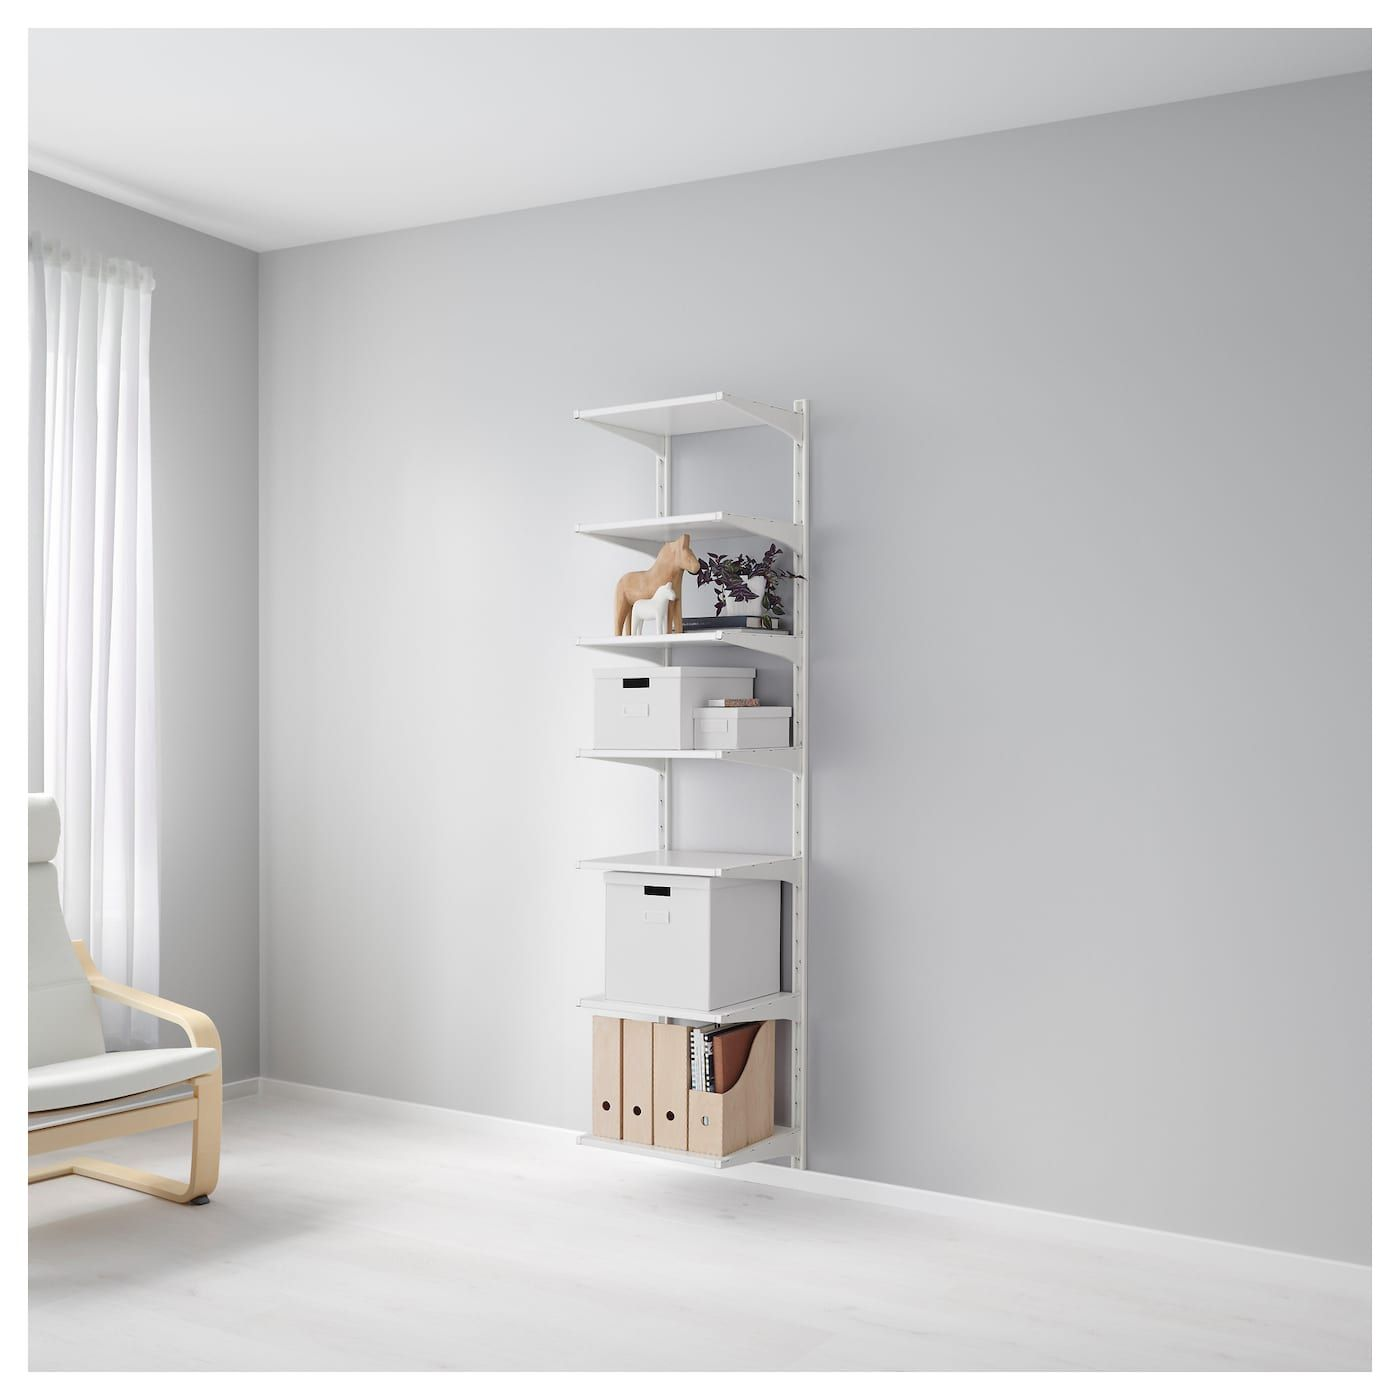 Algot Wall Upright Shelves White 18 1 8x16 1 8x77 1 2 With